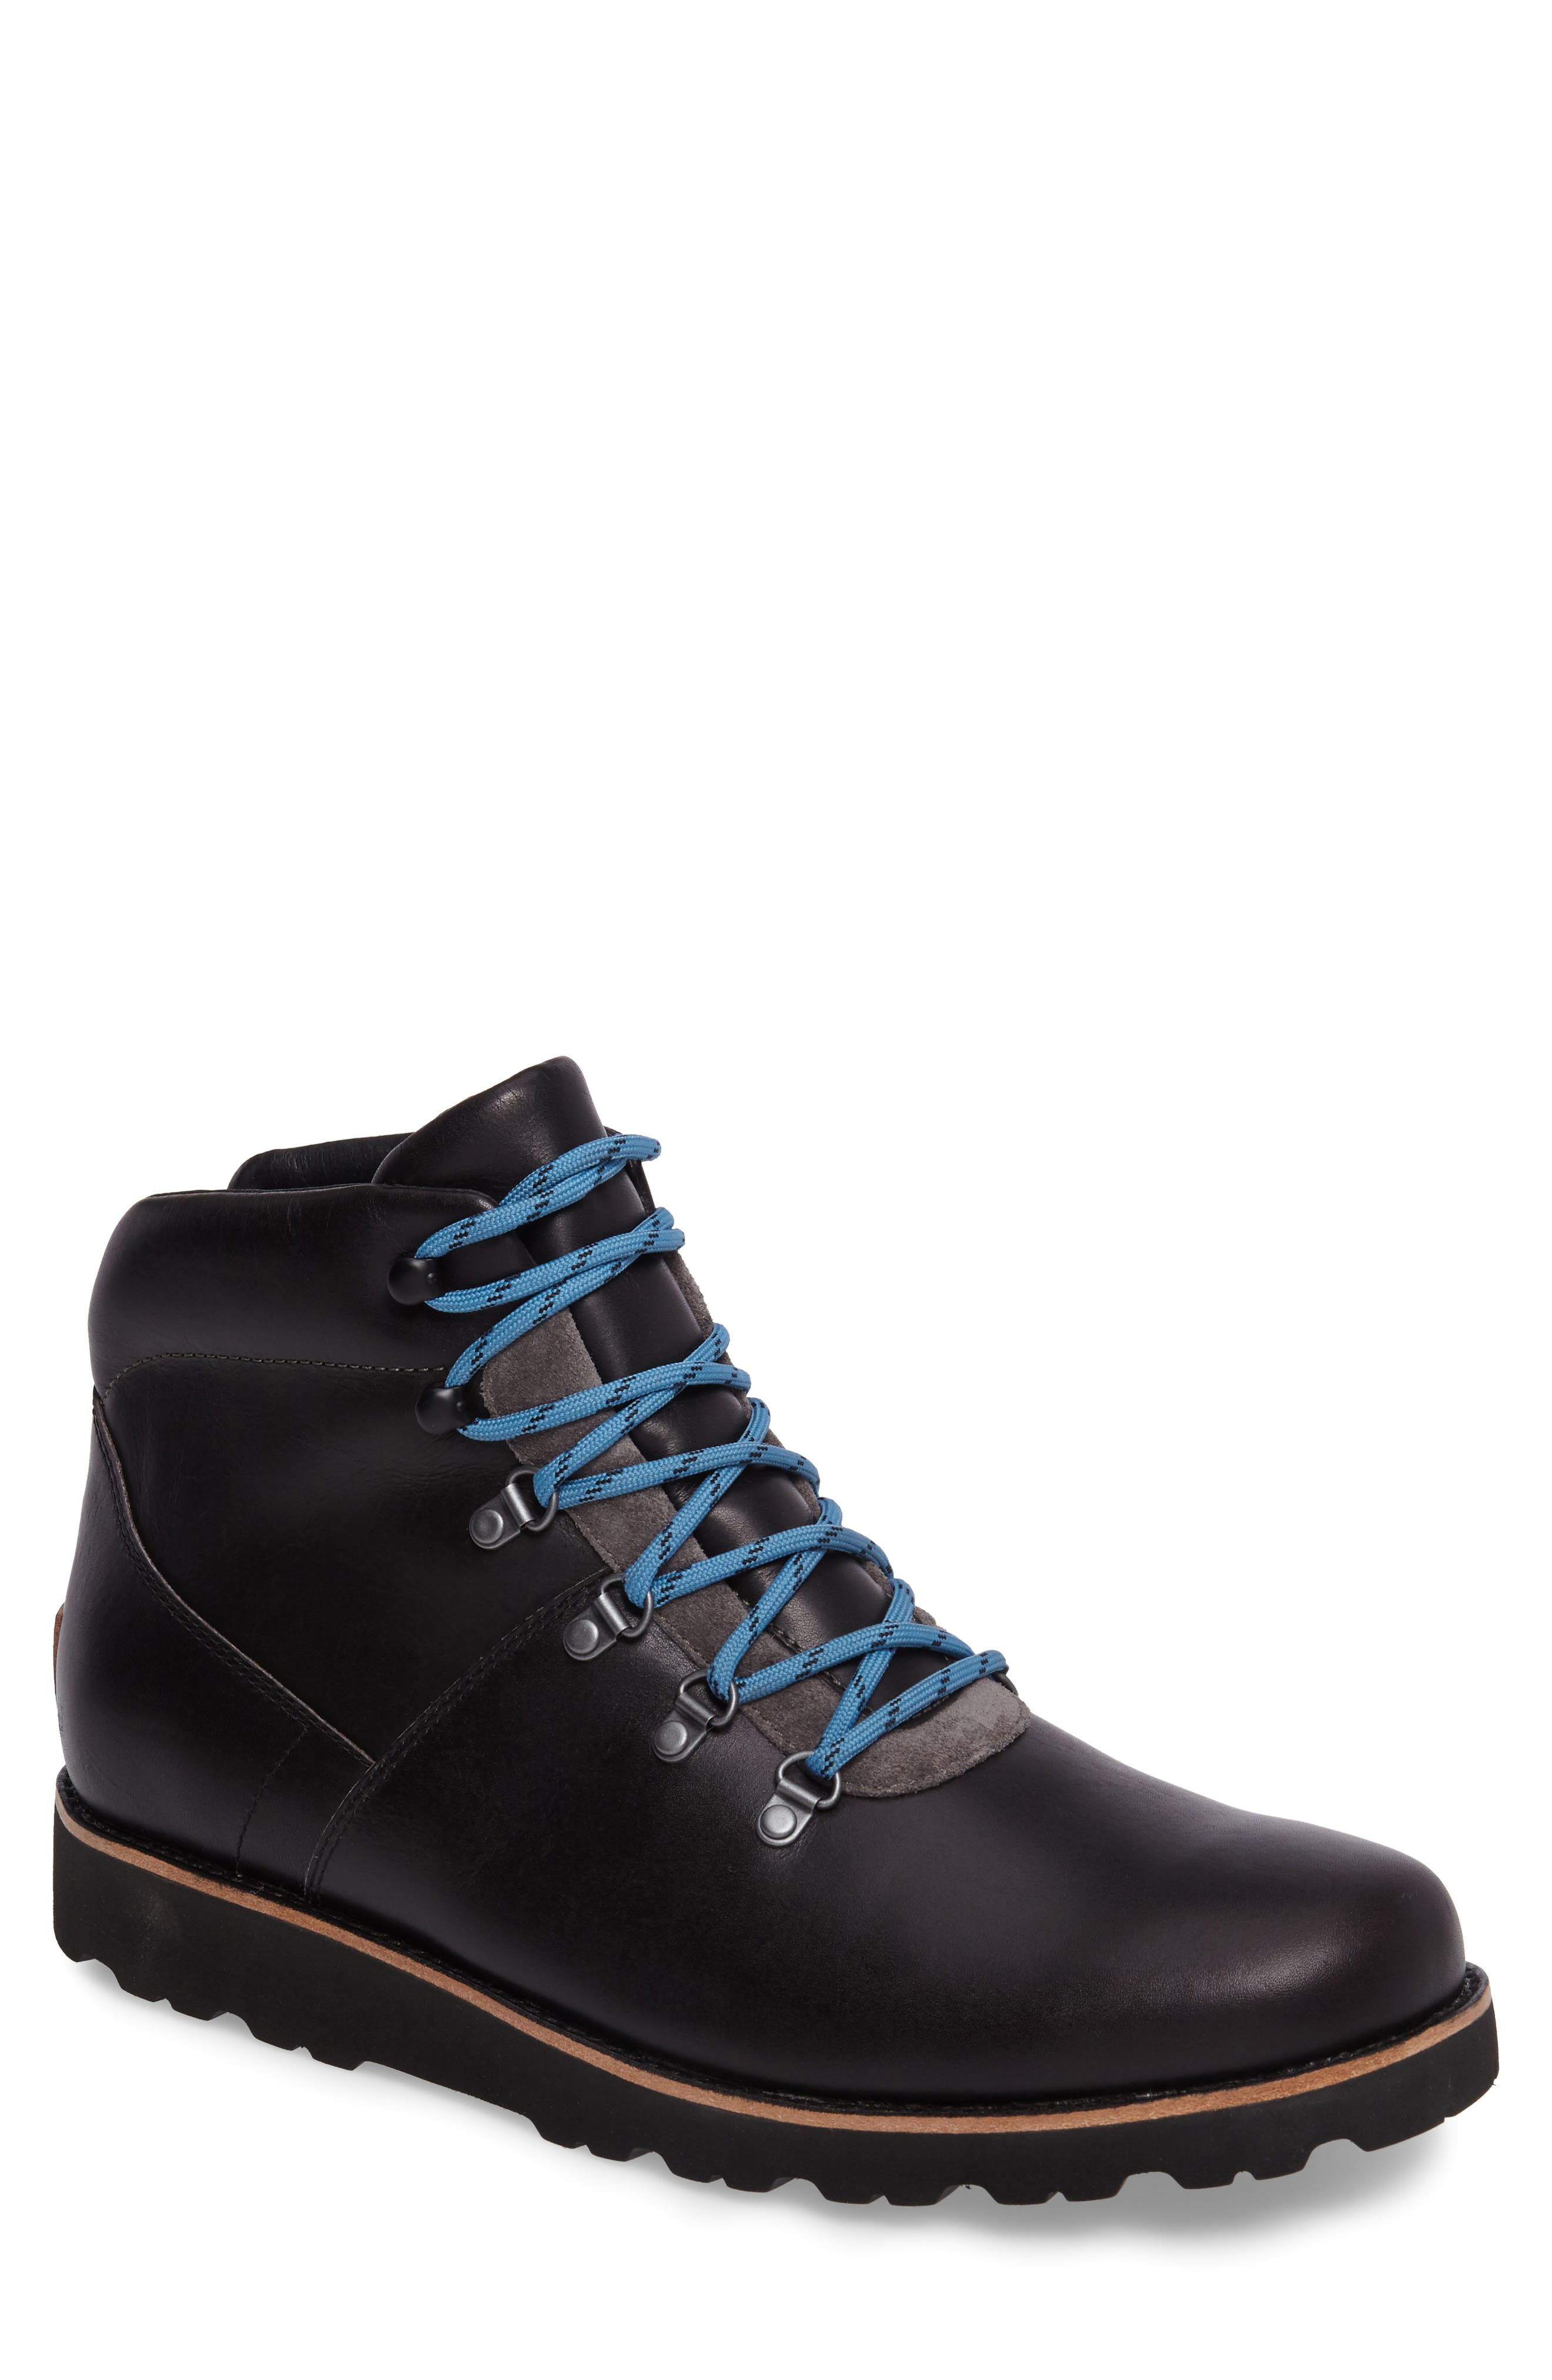 Halfstein Plain Toe Boot,                         Main,                         color, CHARCOAL